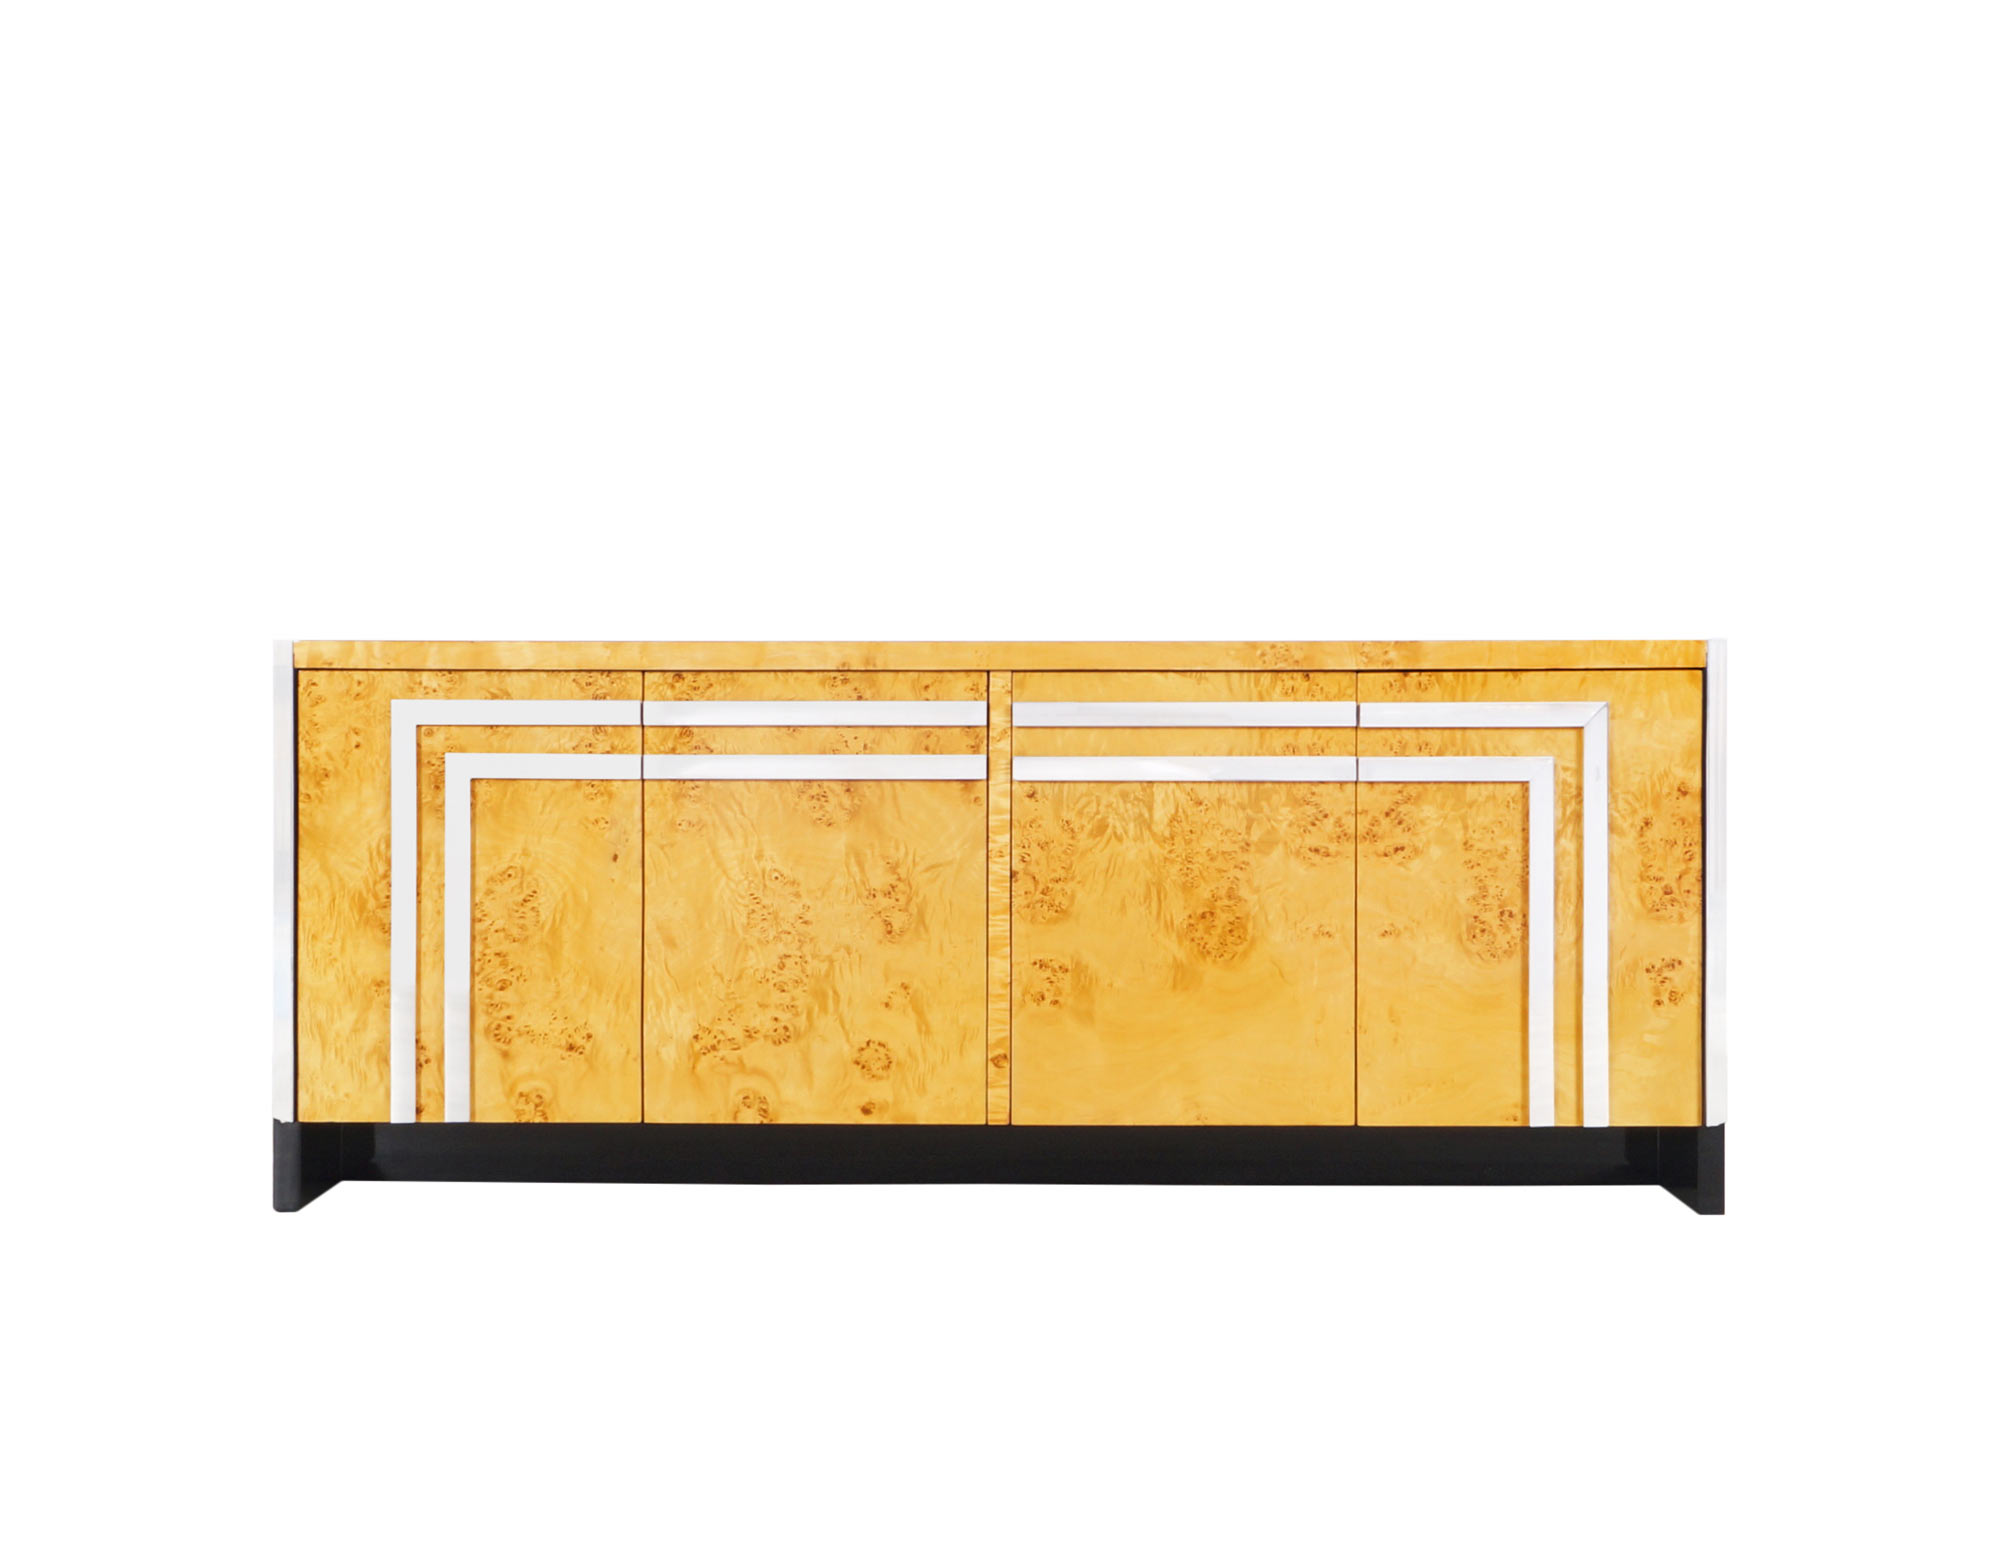 Vintage Art Deco Burl Wood Credenza by Leon Rosen by Pace